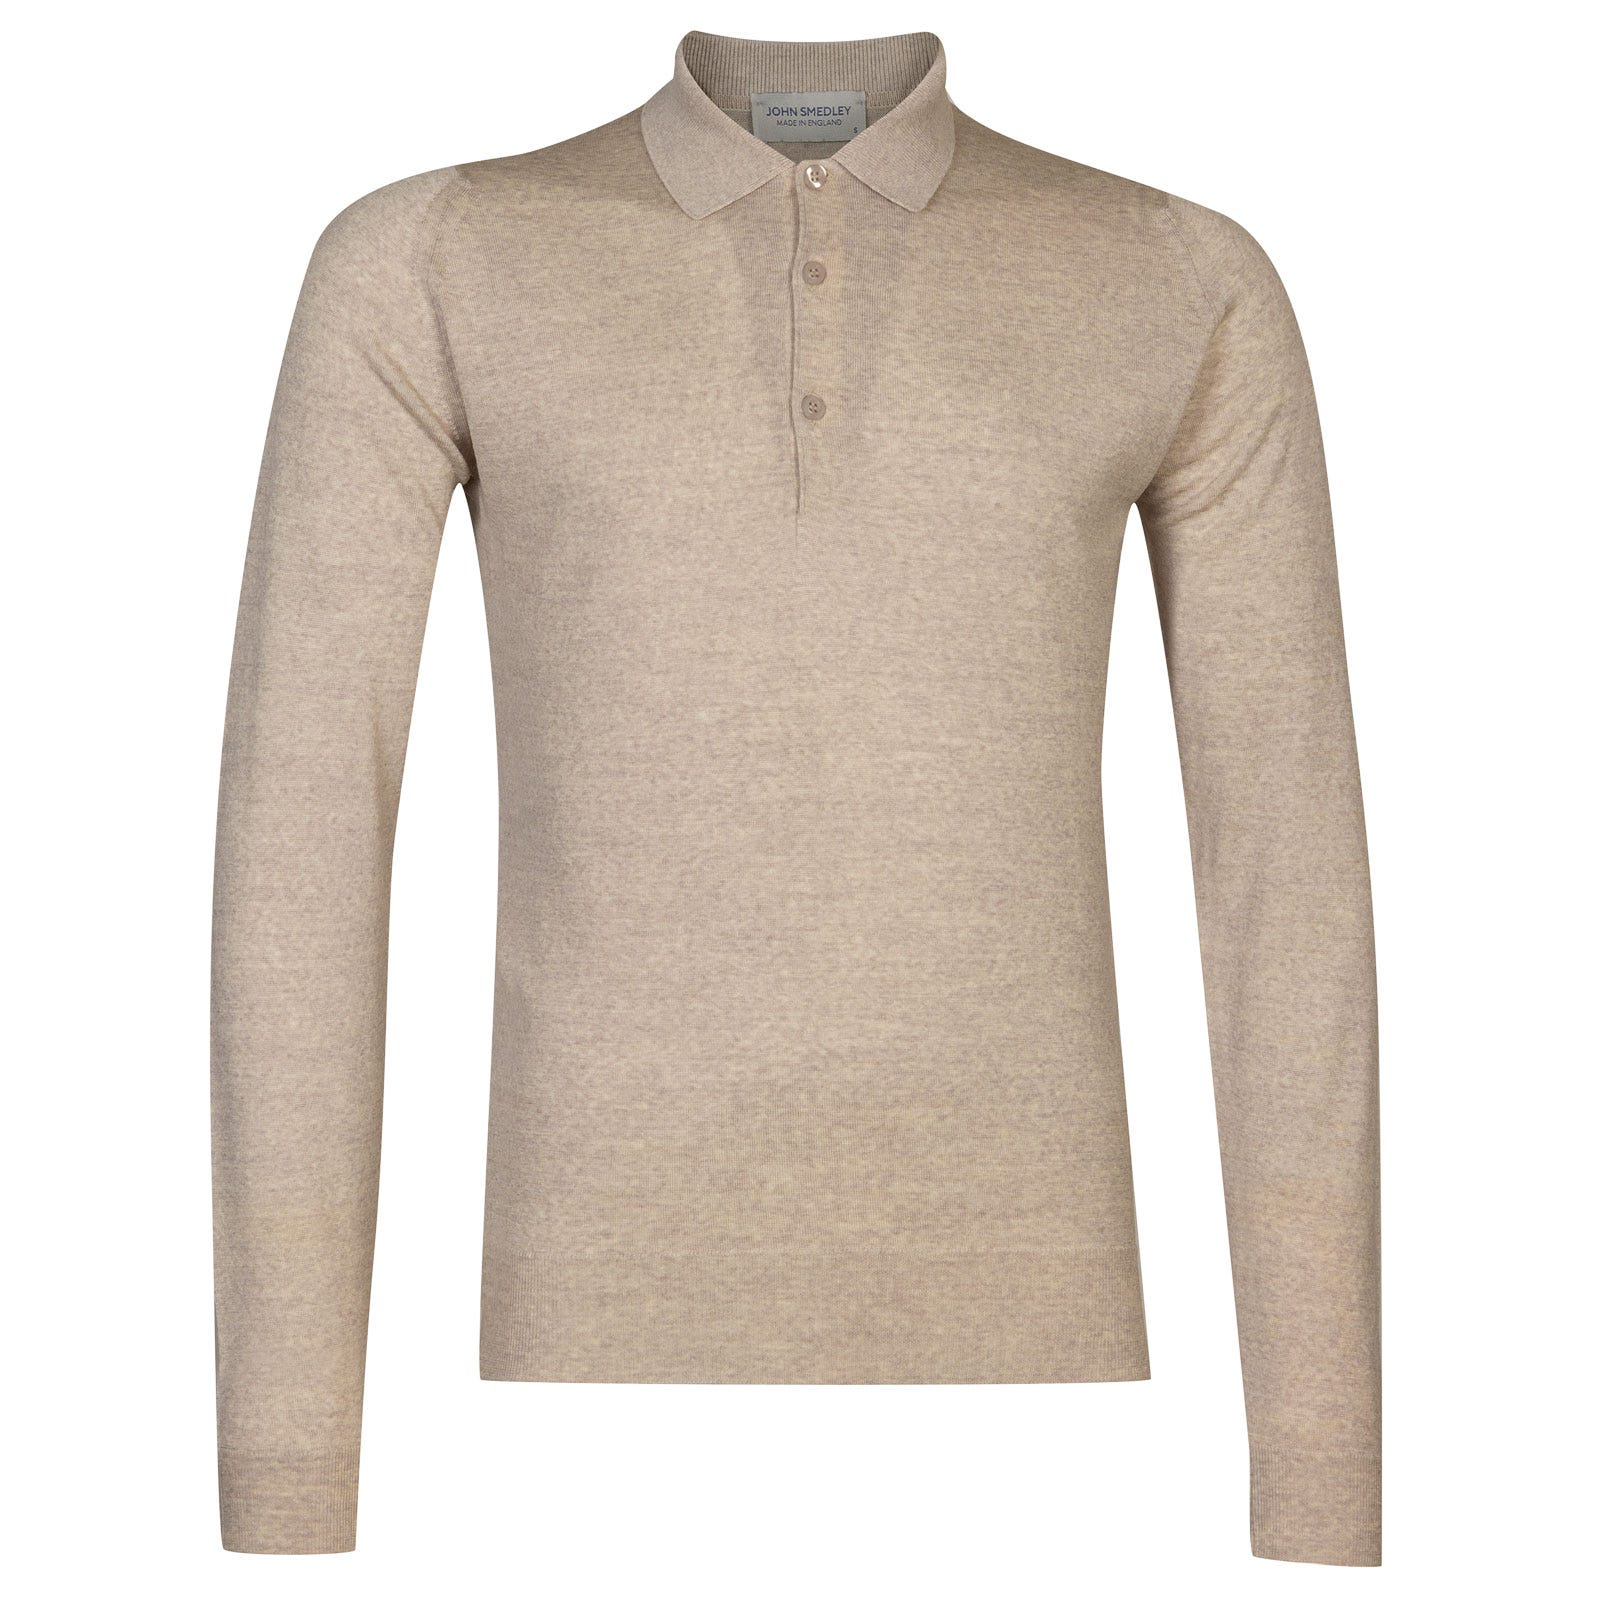 John Smedley Belper Merino Wool Shirt in Eastwood Beige-L